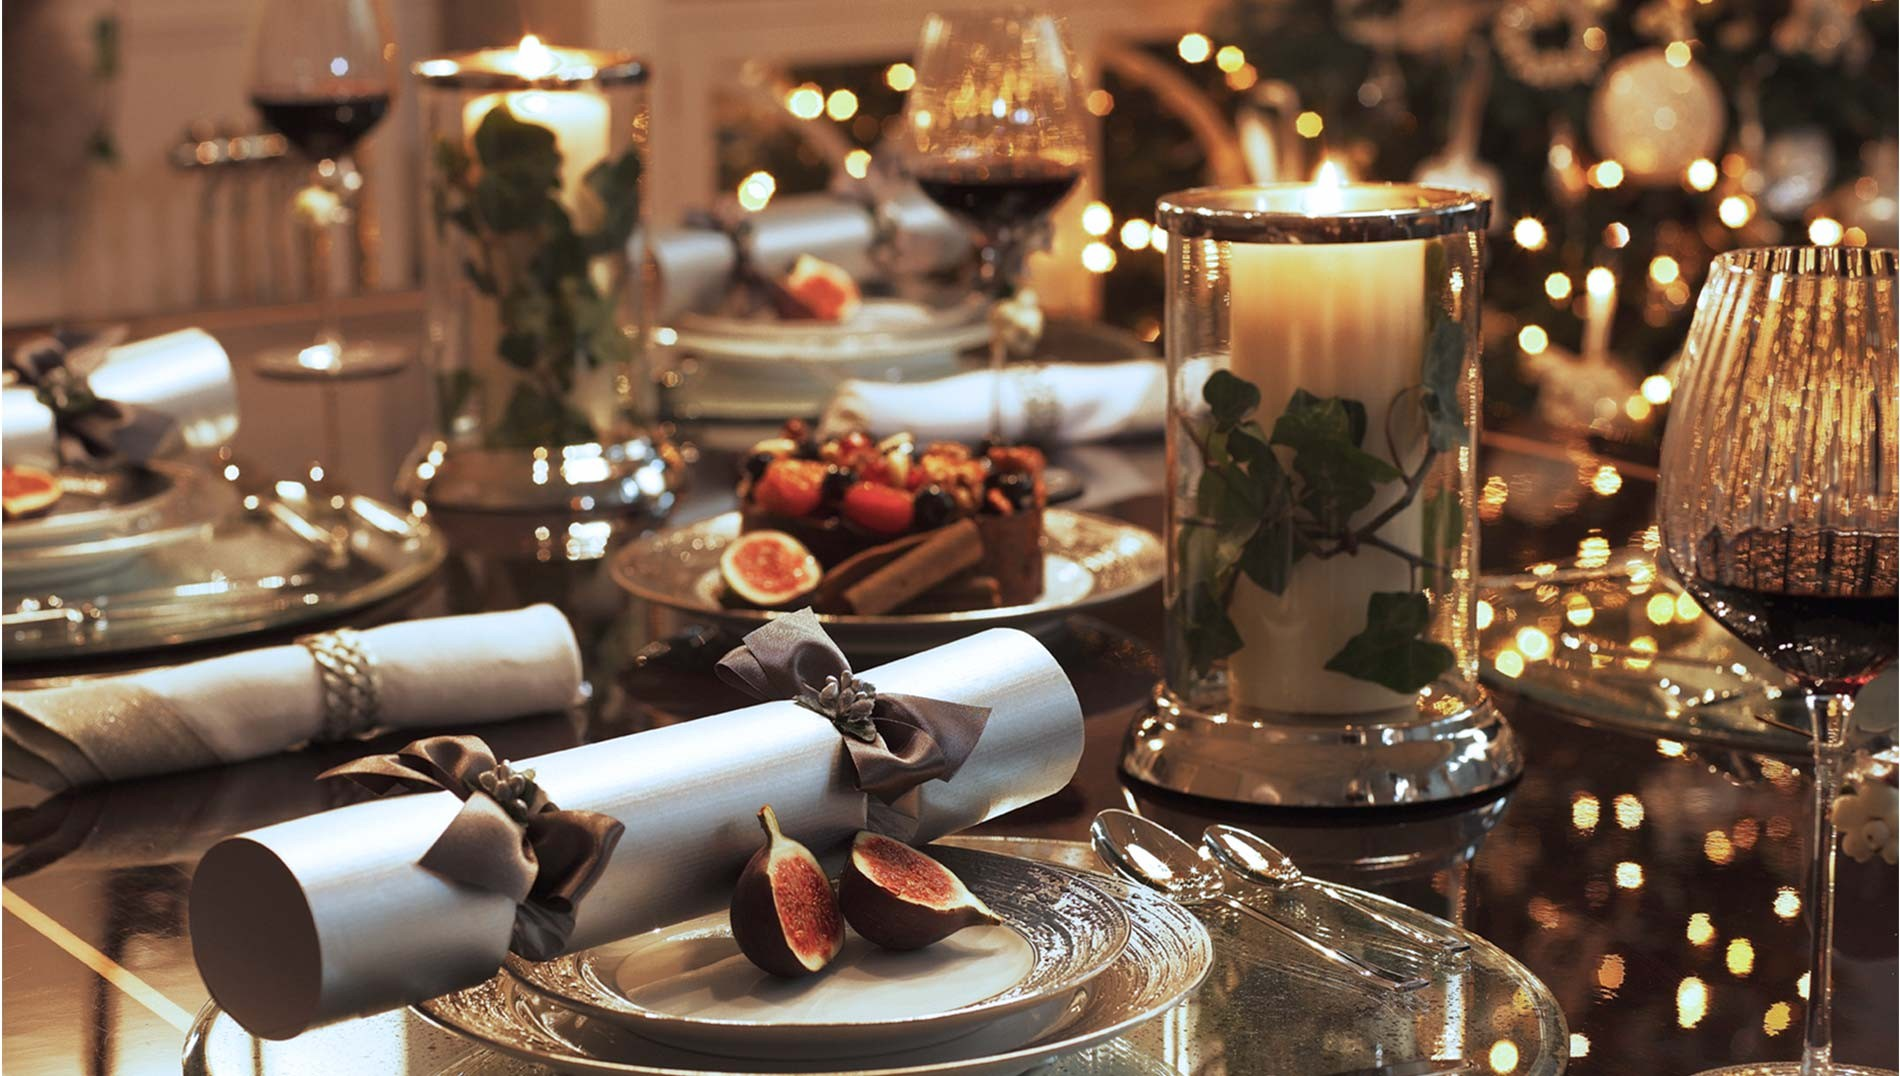 10 Gorgeous Table Settings for Christmas that you Will Love table settings for christmas 8 Gorgeous Table Settings for Christmas that you Will Love 10 Gorgeous Table Settings for Christmas that you Will Love2